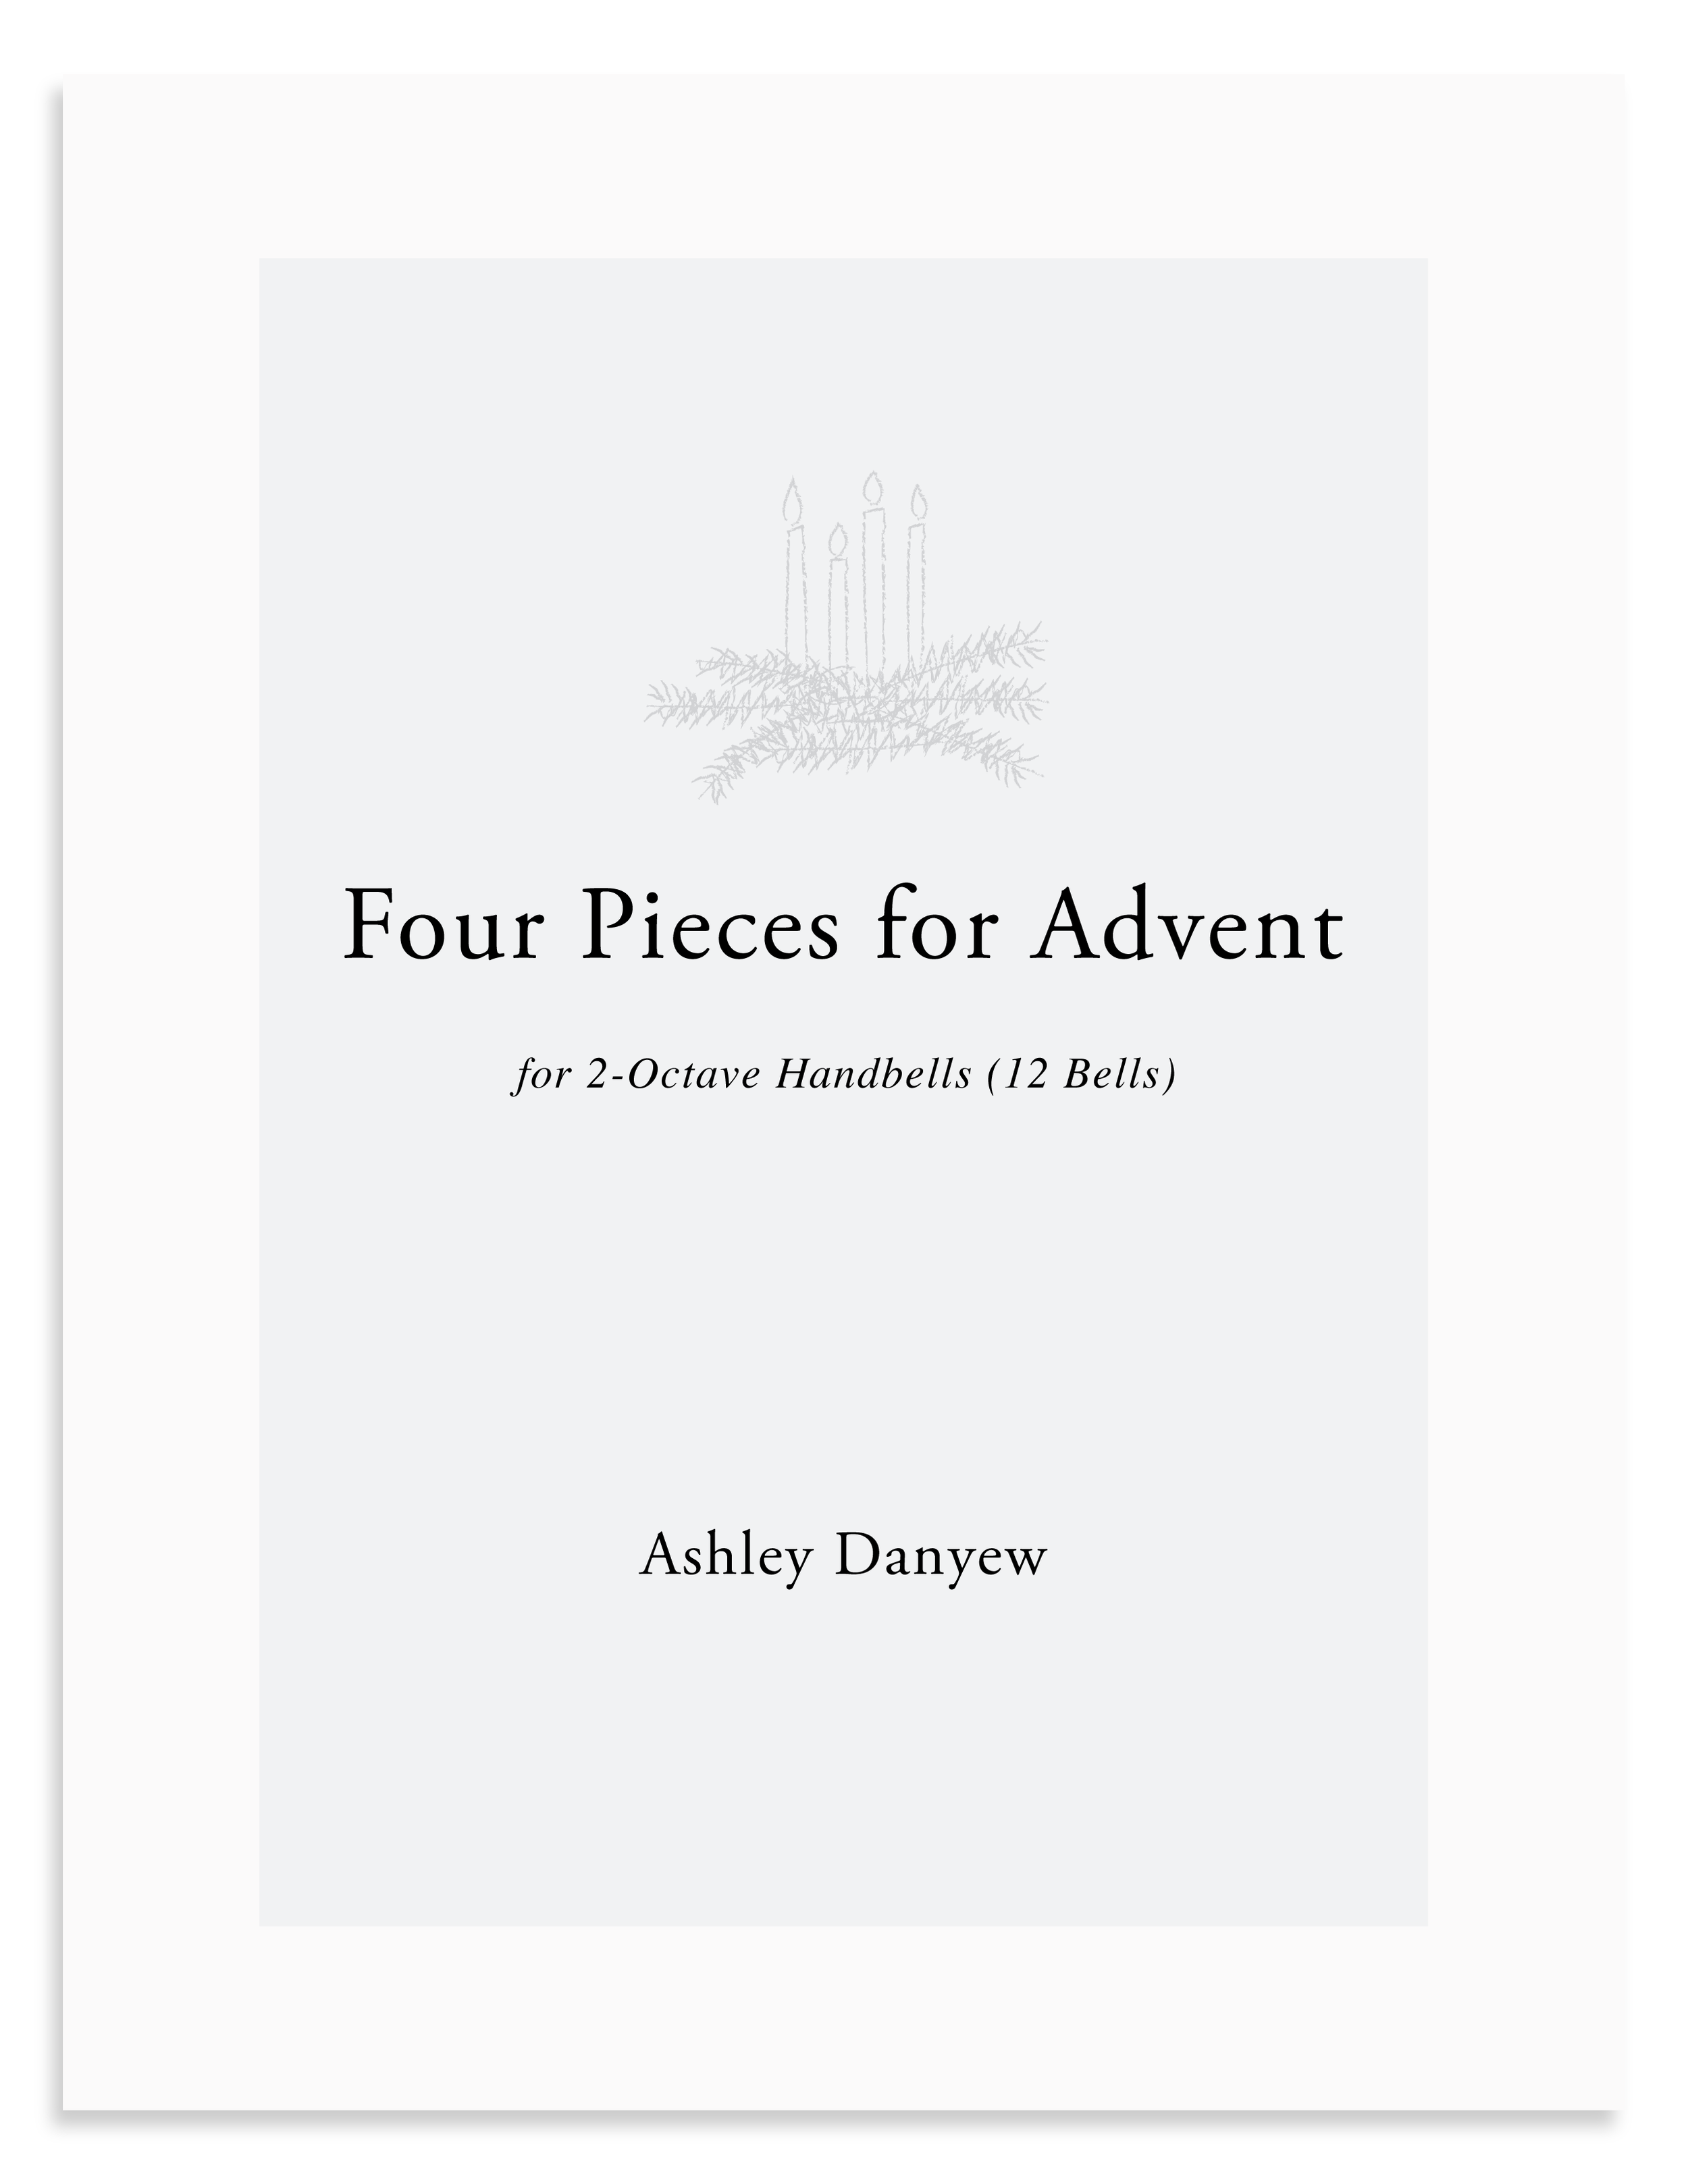 Four Pieces for Advent: A New Collection for 2-Octave Handbells (12 bells)